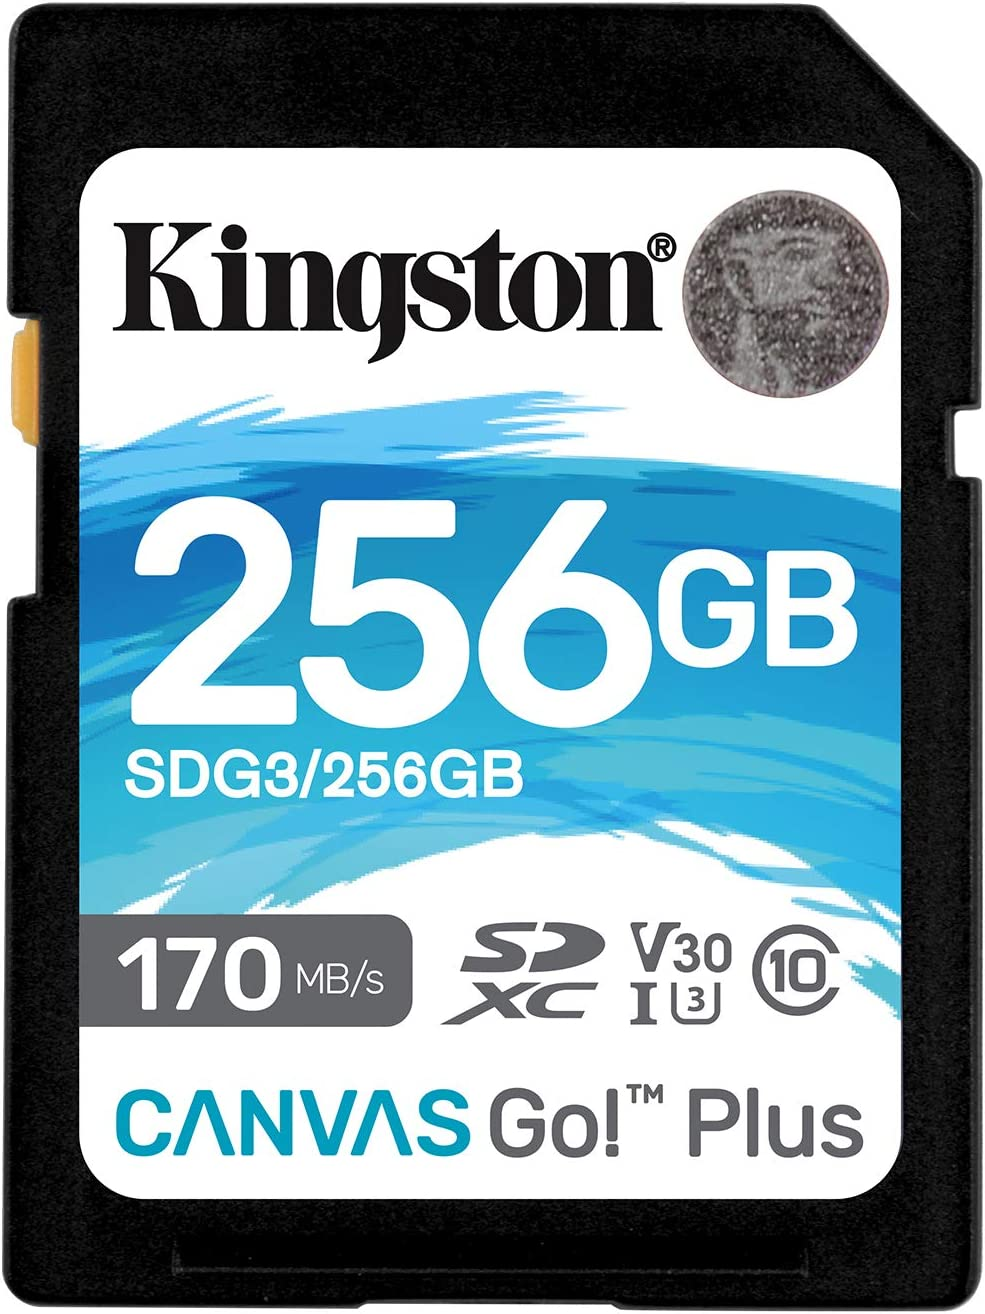 100MBs Works with Kingston 2017 Kingston 256GB Microsoft Surface Pro MicroSDXC Canvas Select Plus Card Verified by SanFlash.